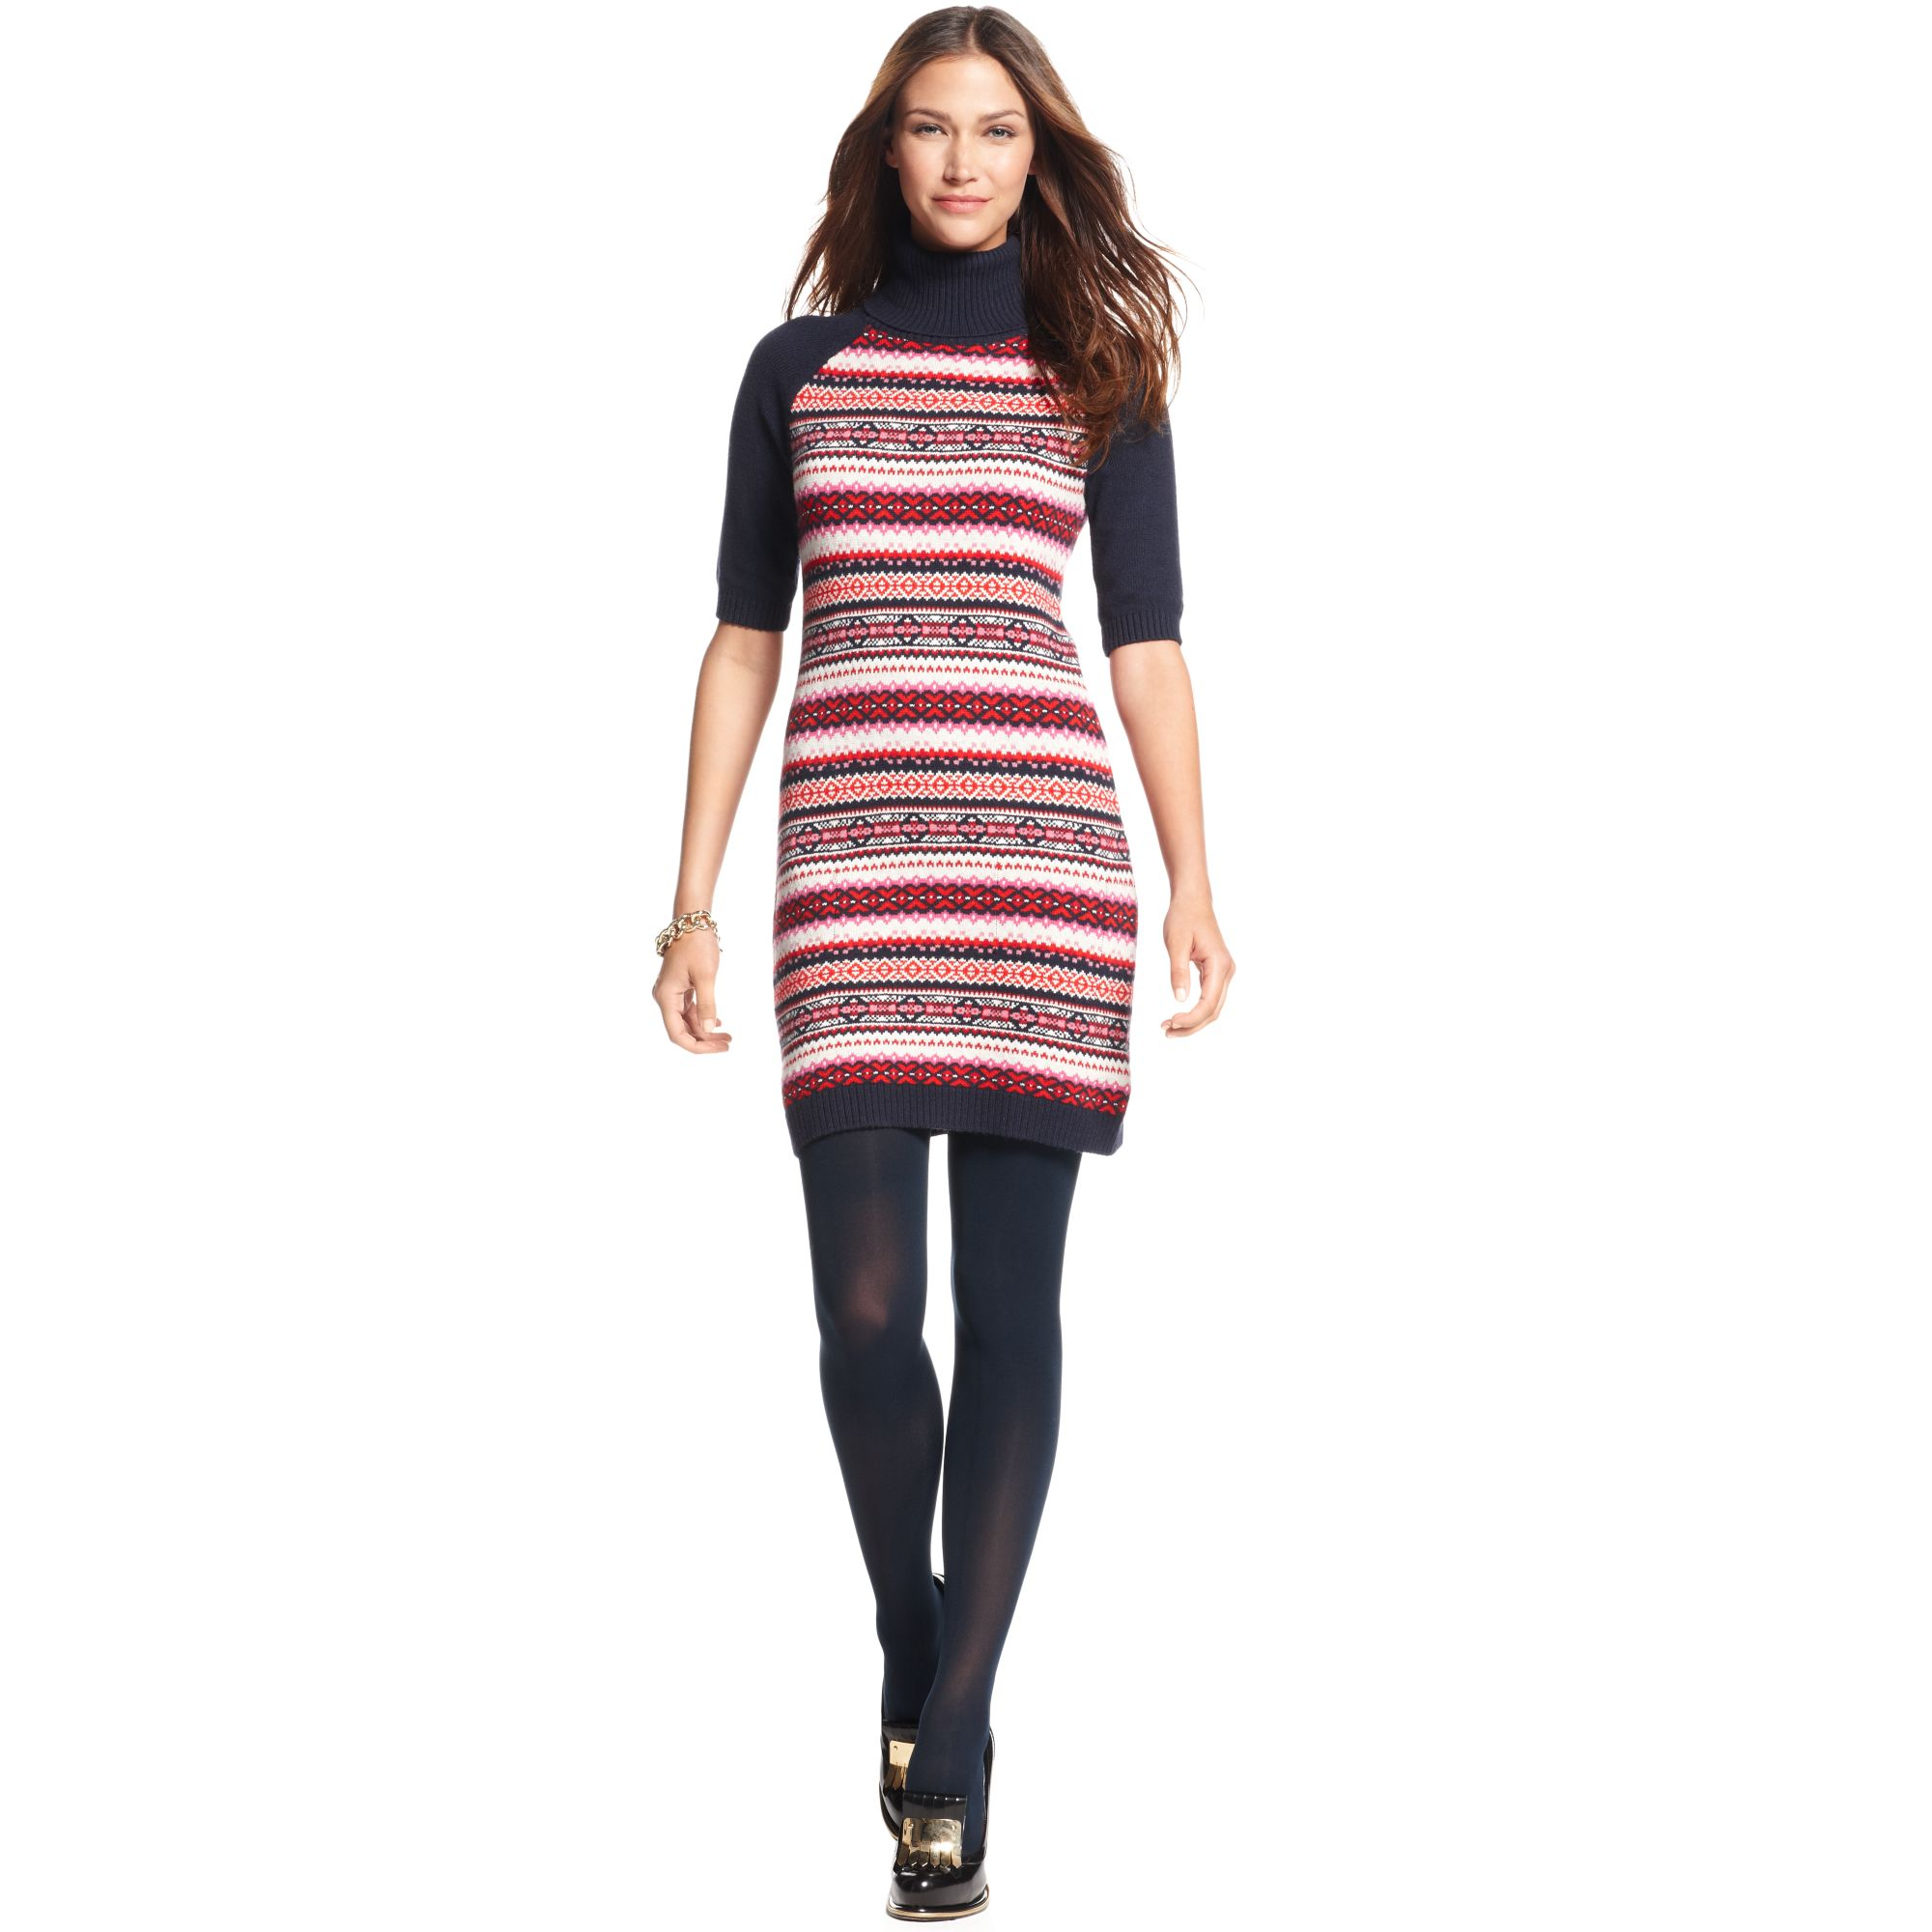 Tommy hilfiger Short Sleeve Printed Sweater Dress | Lyst